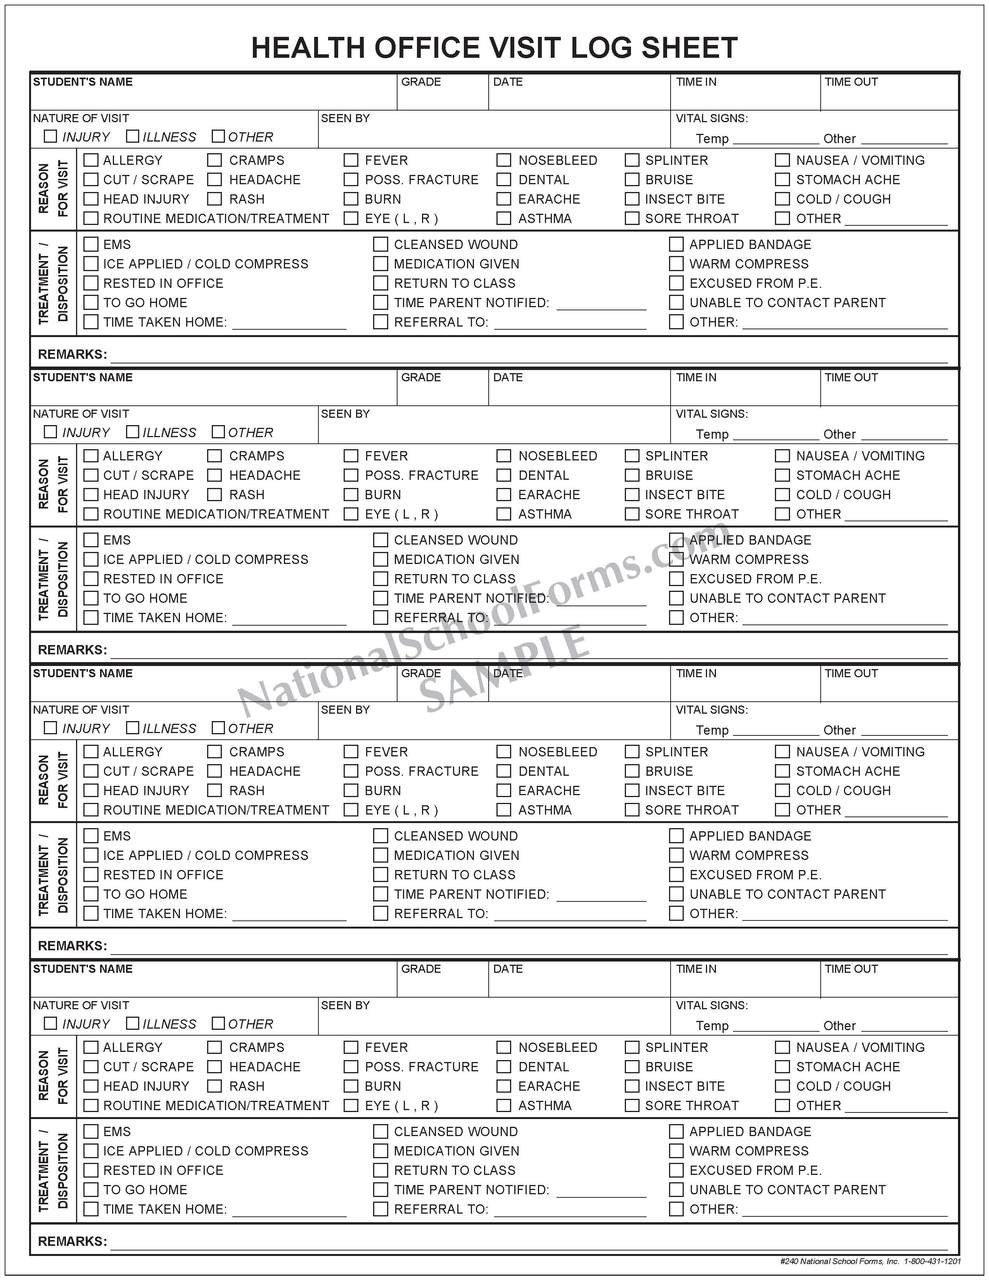 Health Office Visit Log Sheet Pad (240)